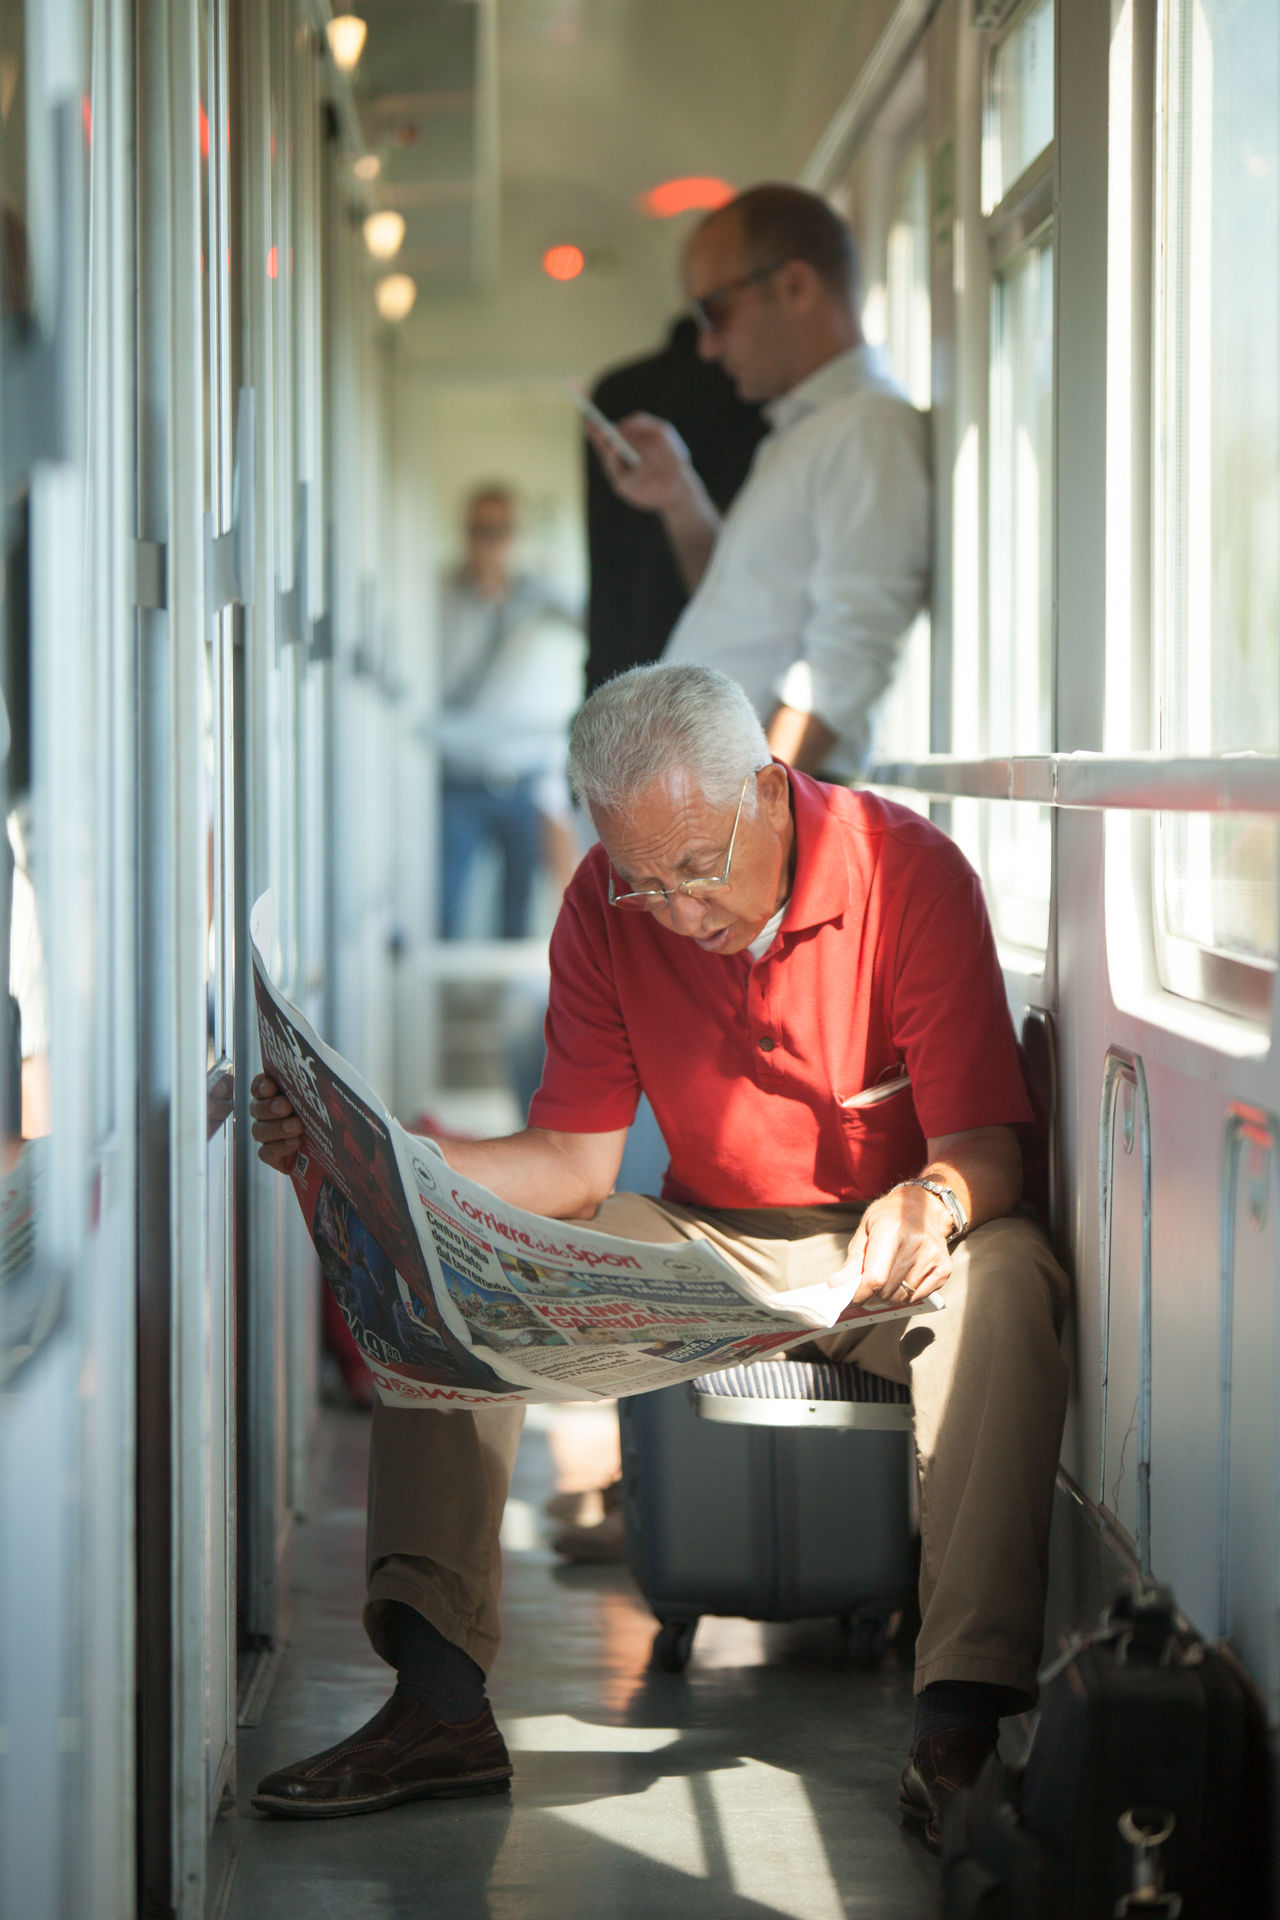 Newspaper against smartphone on a train Day Full Length Indoors  Mature Adult Mature Men Men Newspaper Real People Sitting Standing The Street Photographer - 2017 EyeEm Awards Two People Uniform Working Young Adult